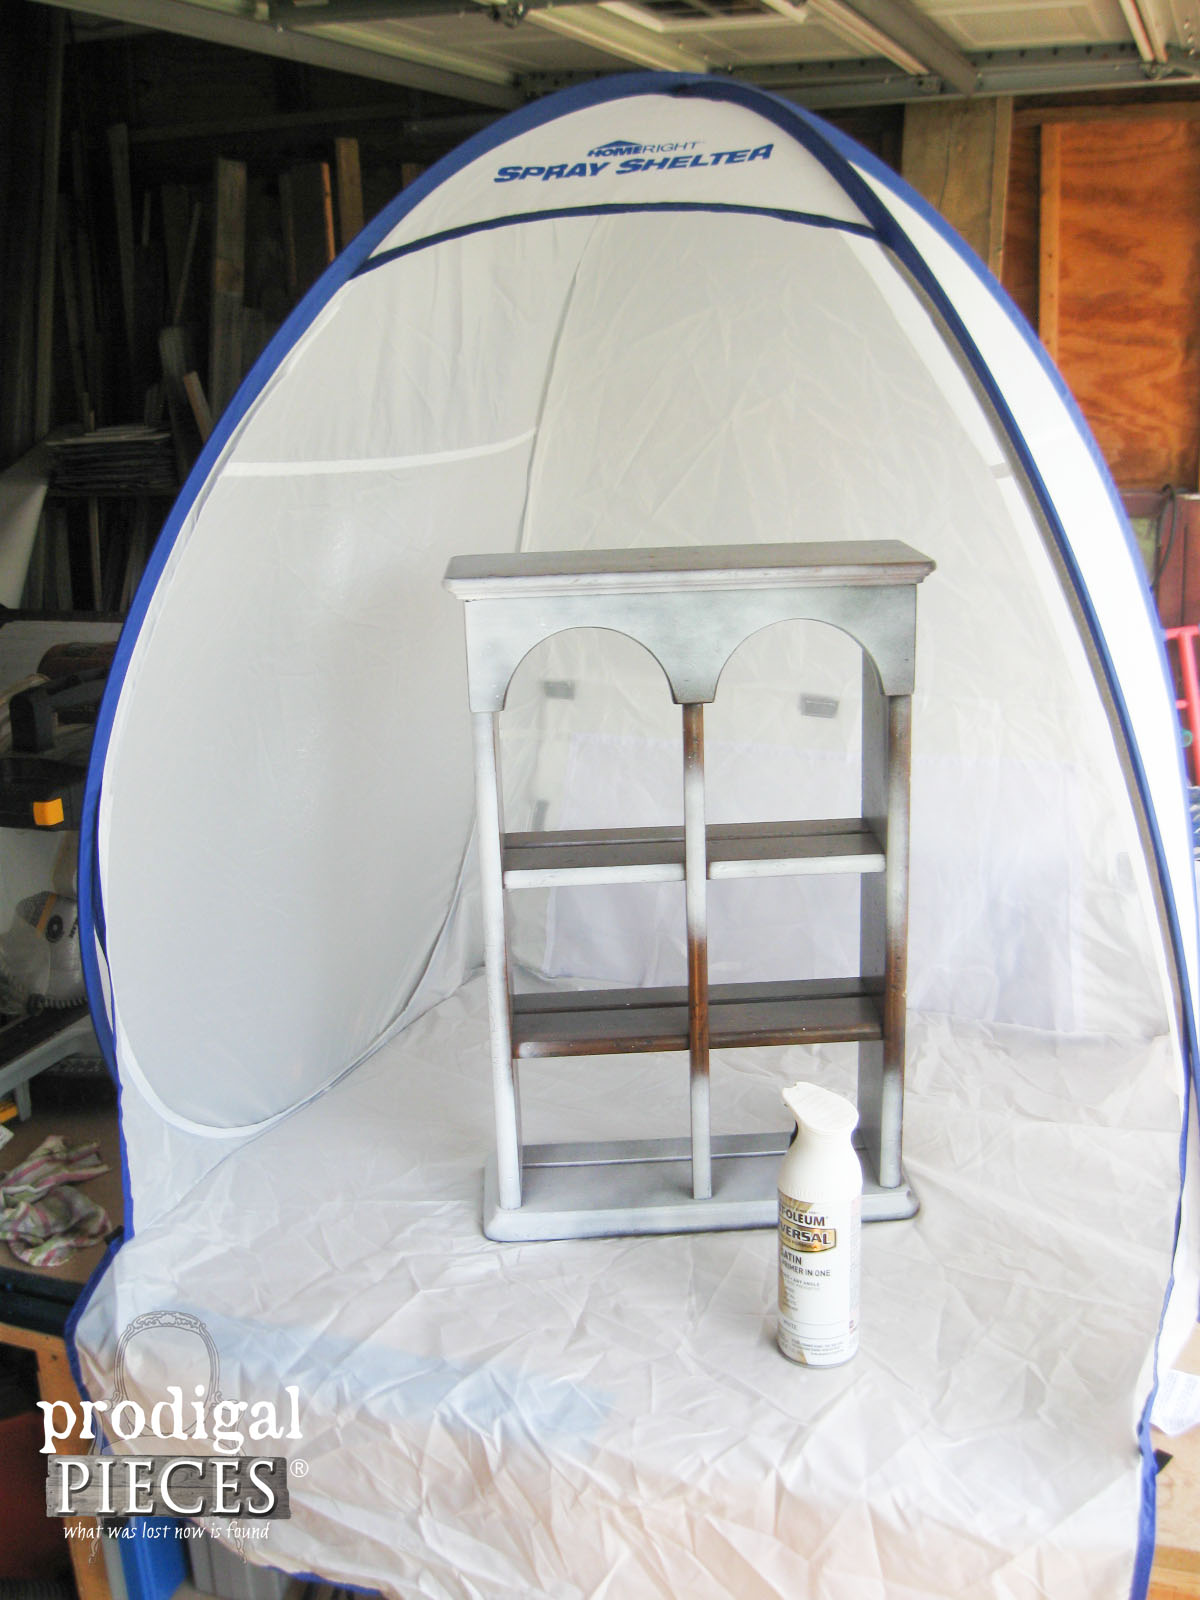 Introducing the New HomeRight Spray Shelter for Small Projects | Prodigal Pieces | www.prodigalpieces.com